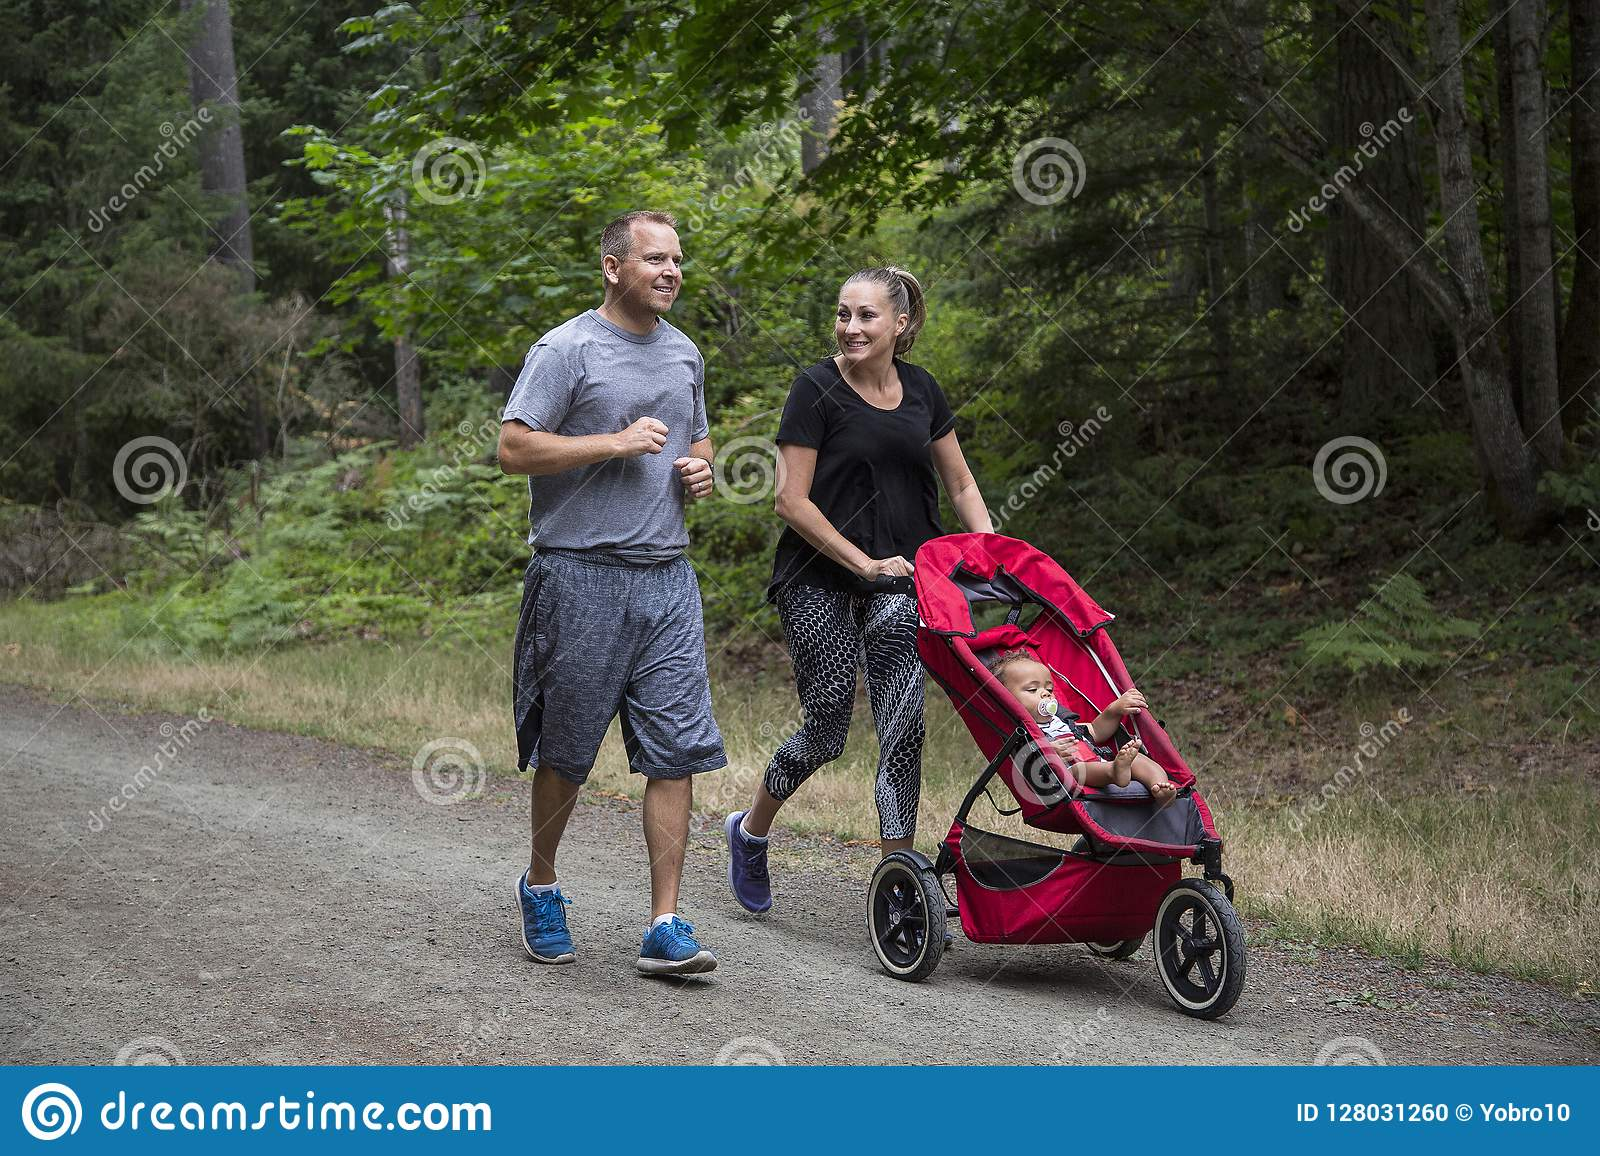 Baby Pushing Pram Youtube Couple Exercising And Jogging Together Pushing Their Baby In